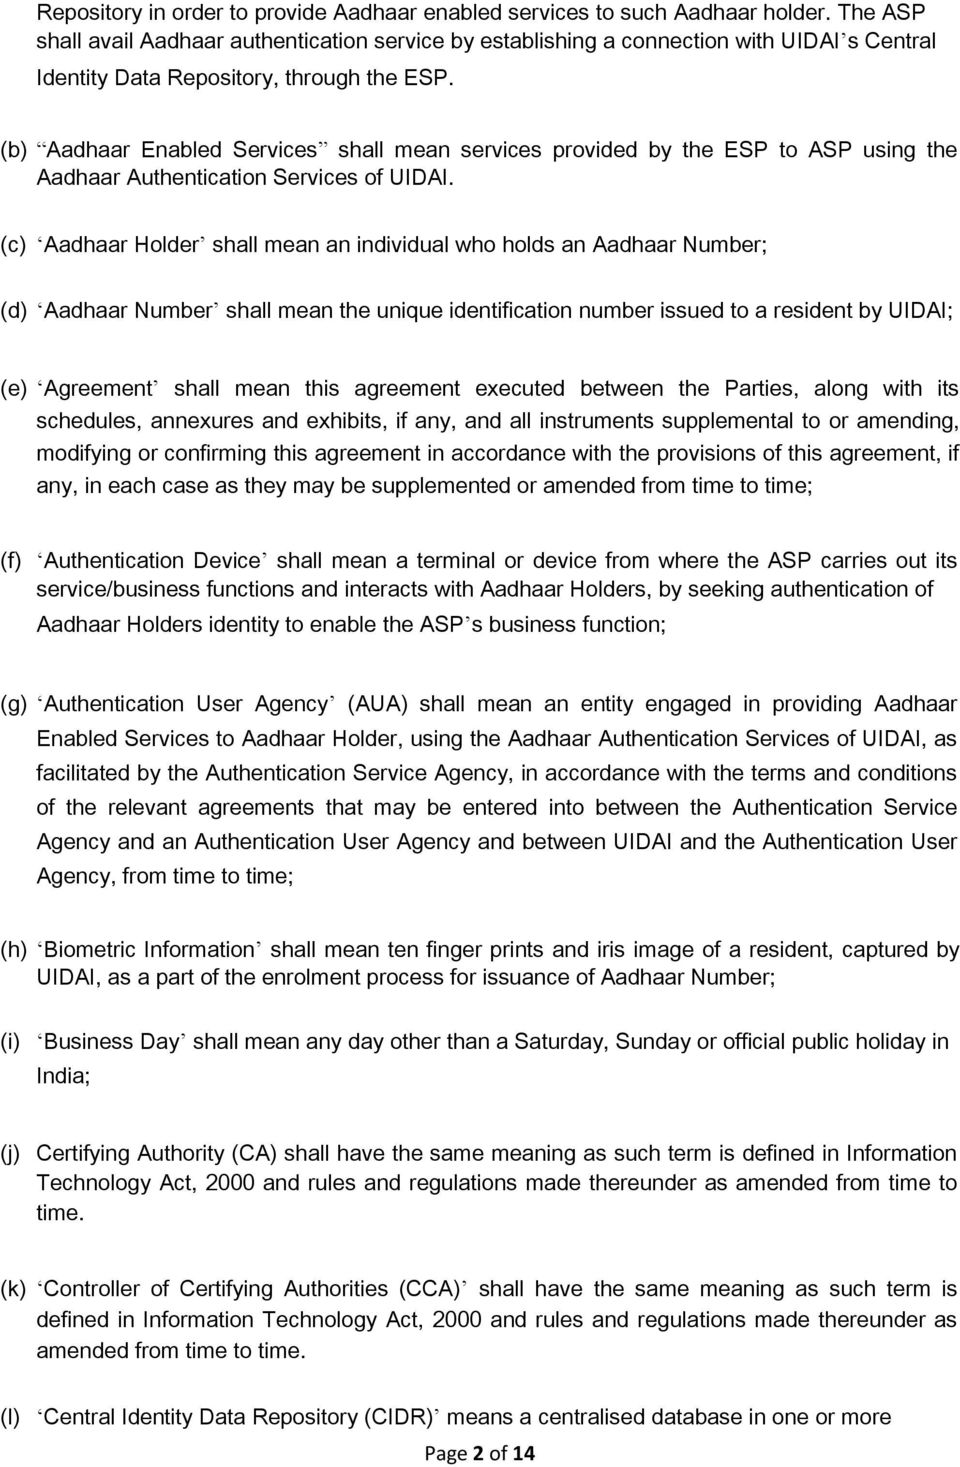 (b) Aadhaar Enabled Services shall mean services provided by the ESP to ASP using the Aadhaar Authentication Services of UIDAI.